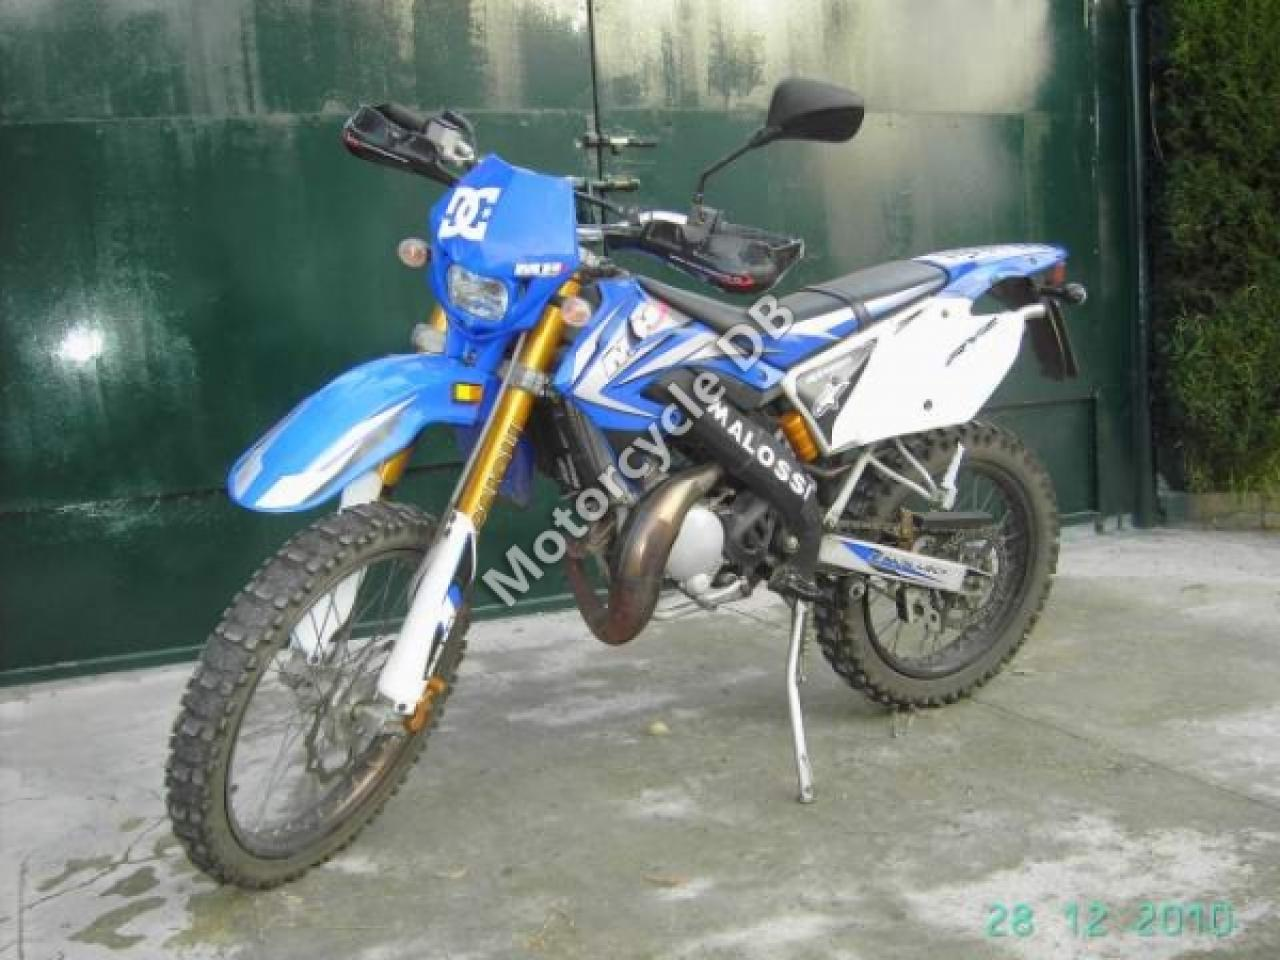 Motorhispania Ryz 50 Urban Bike 2007 images #112416